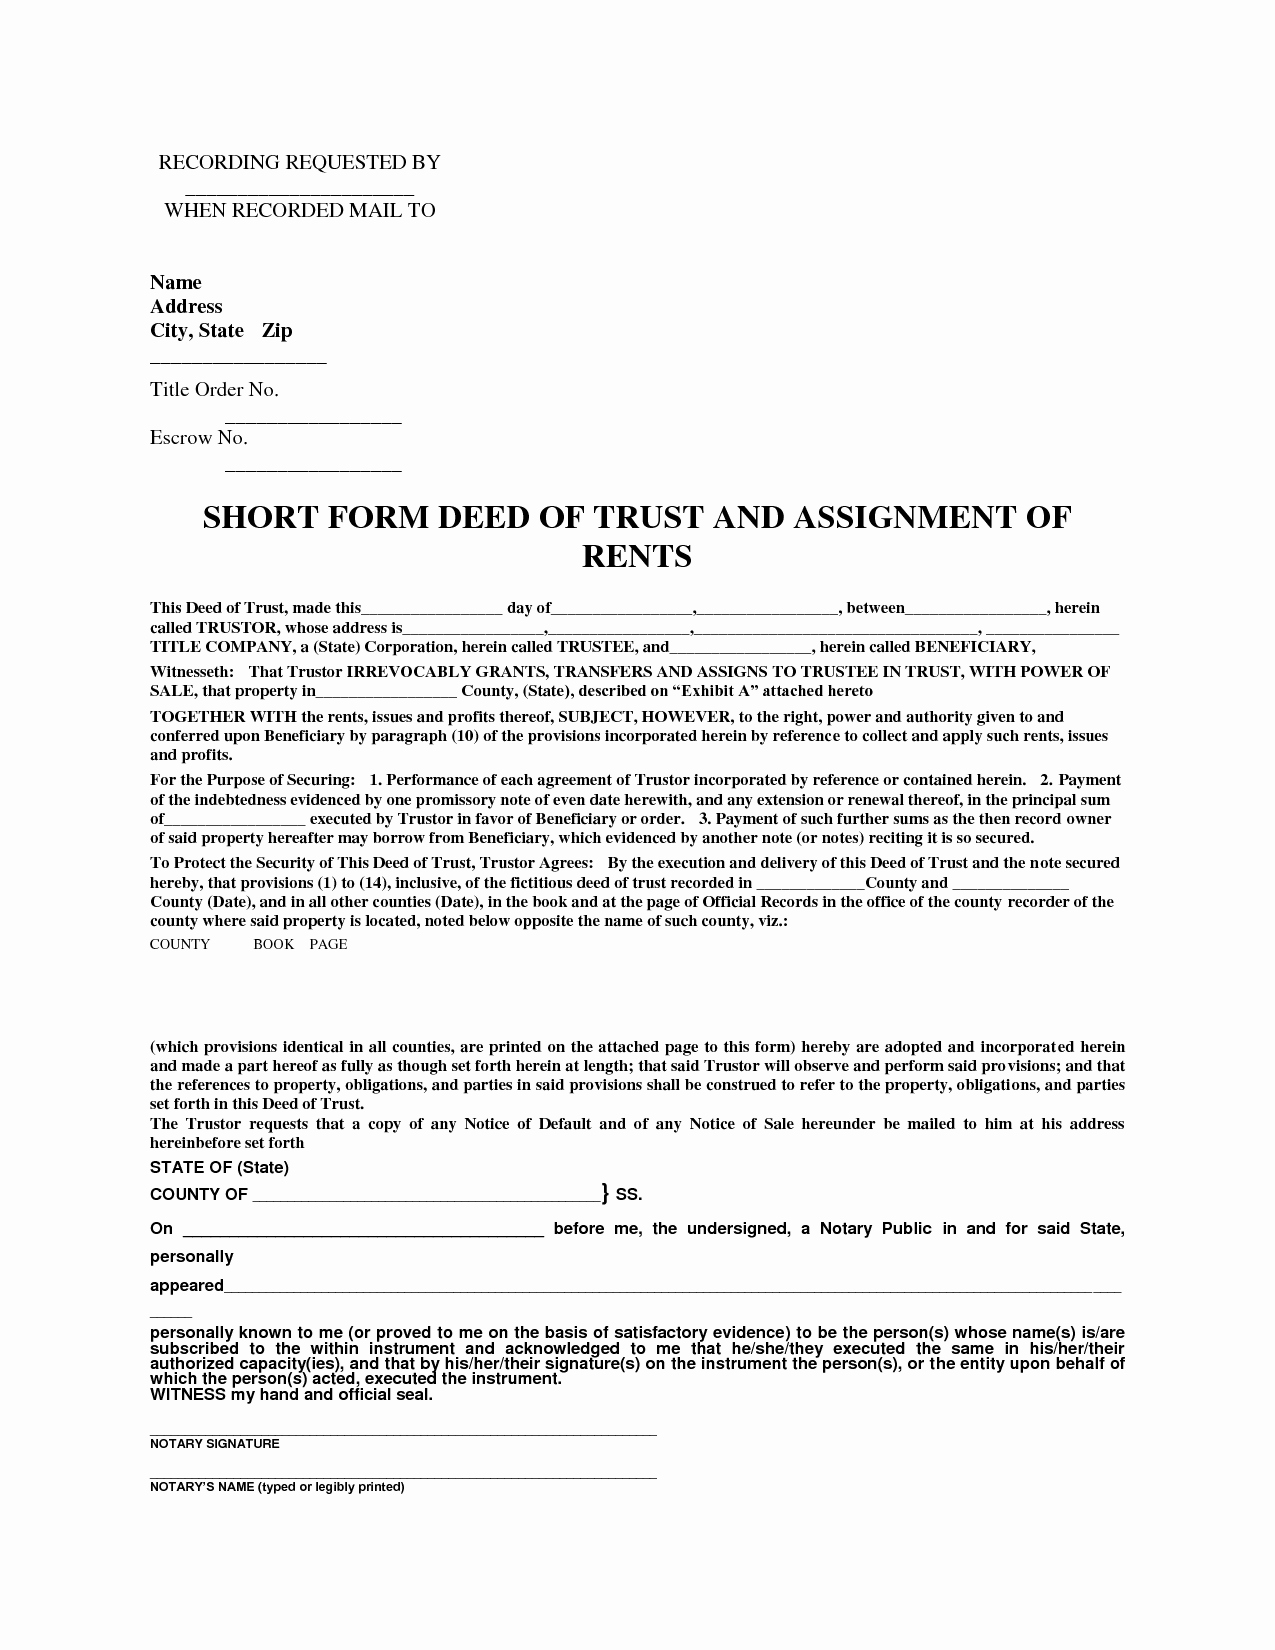 Affidavit Of assignment Luxury Short form Deed Of Trust & assignment Of Rents by